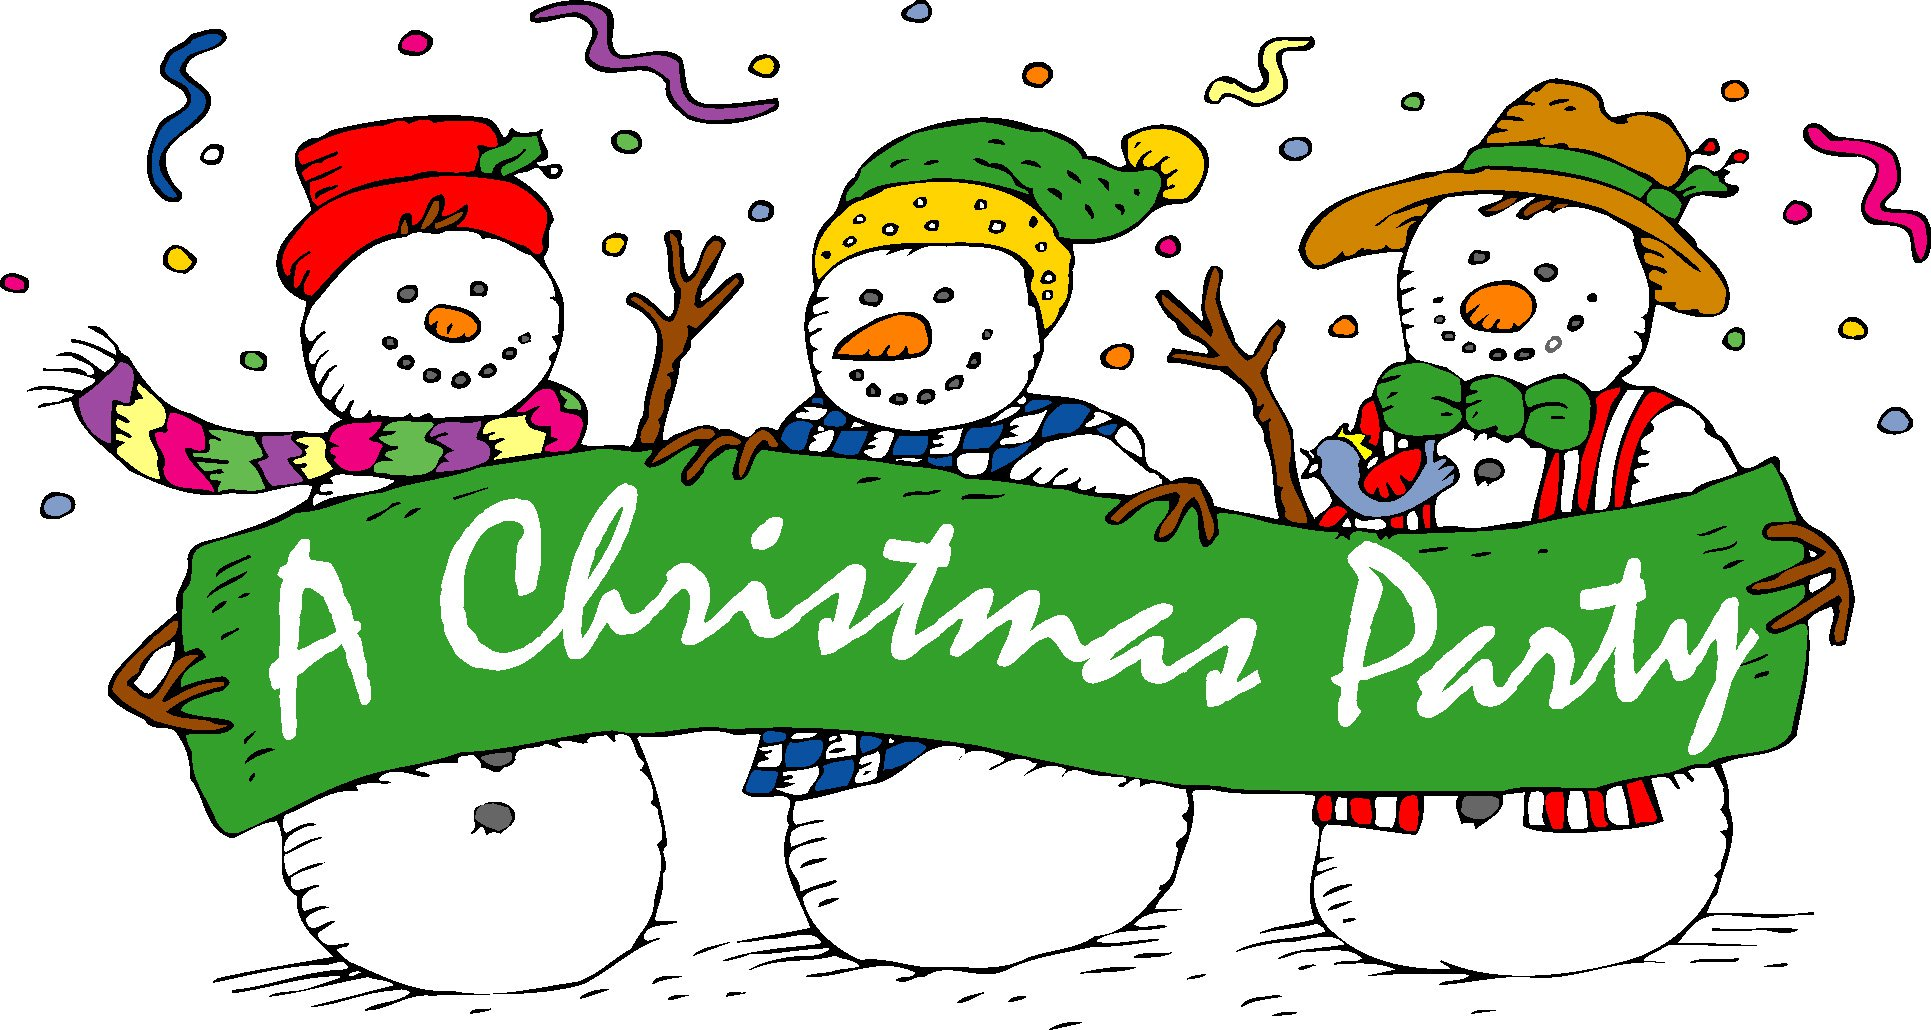 Christmas party images clip art clipartbarn.